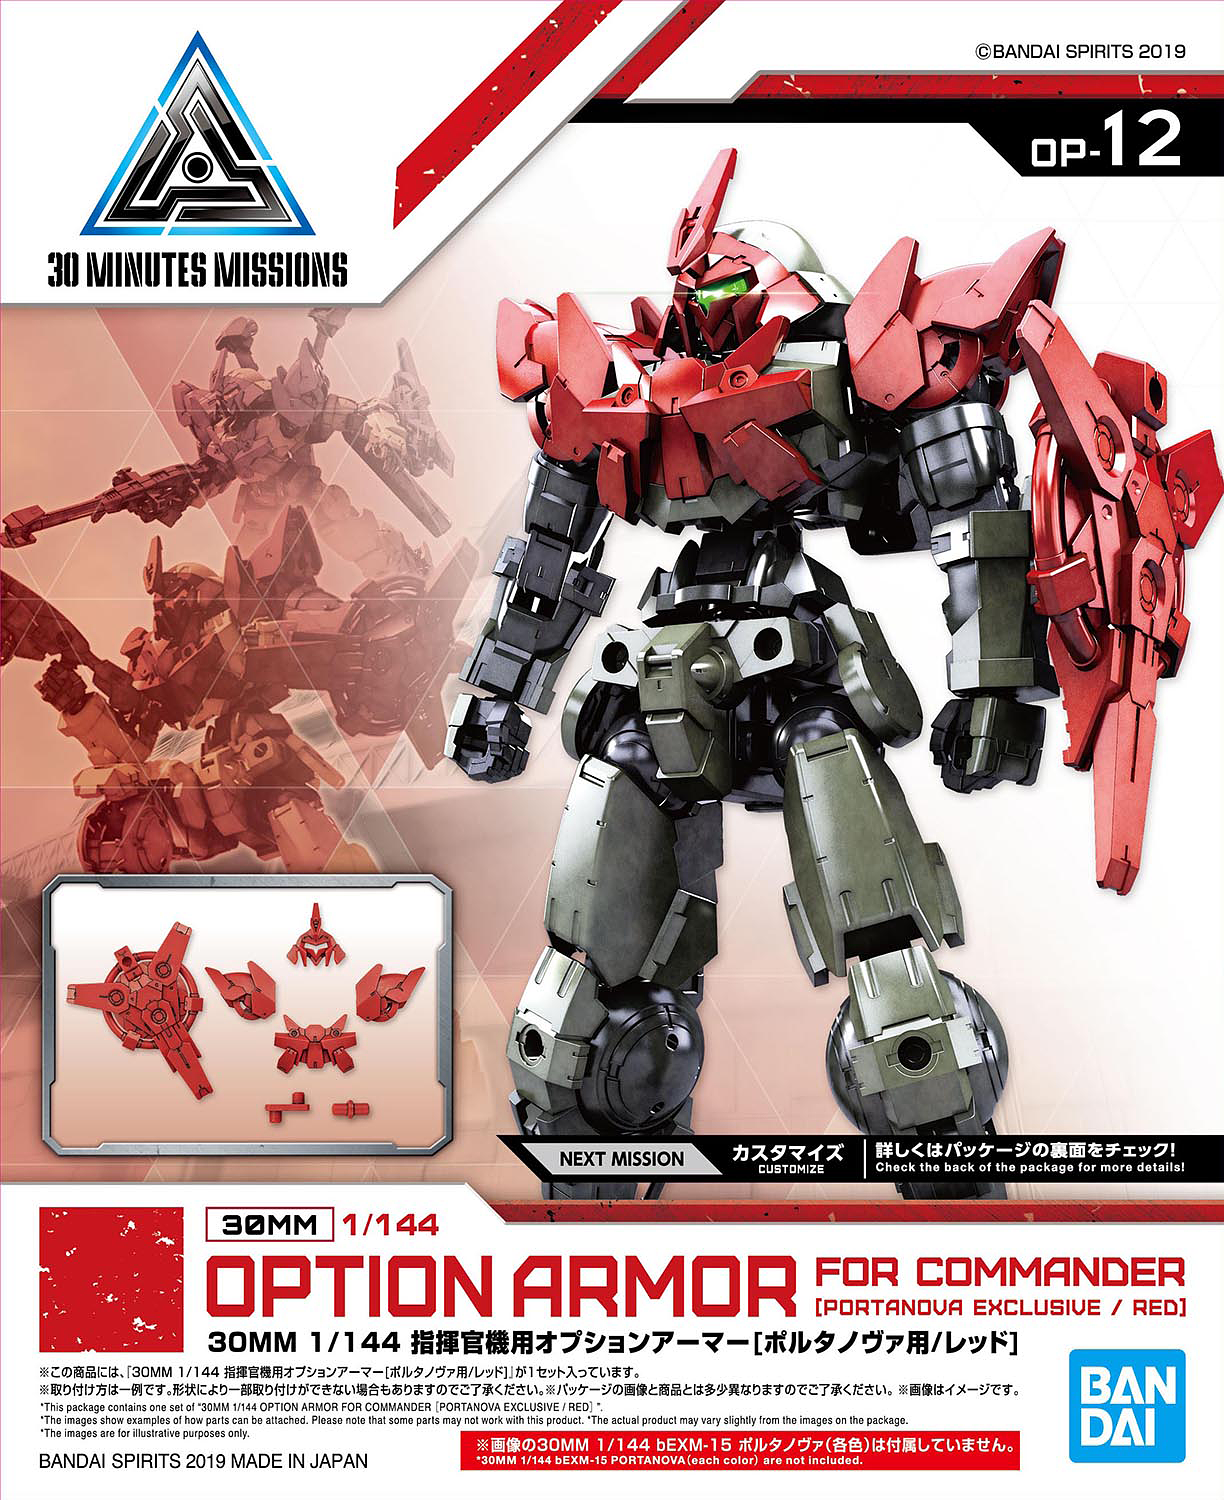 Bandai Spirits 30 Minute Missions #12 1/144 Option Armor For Commander Type (Portanova Exclusive Red)